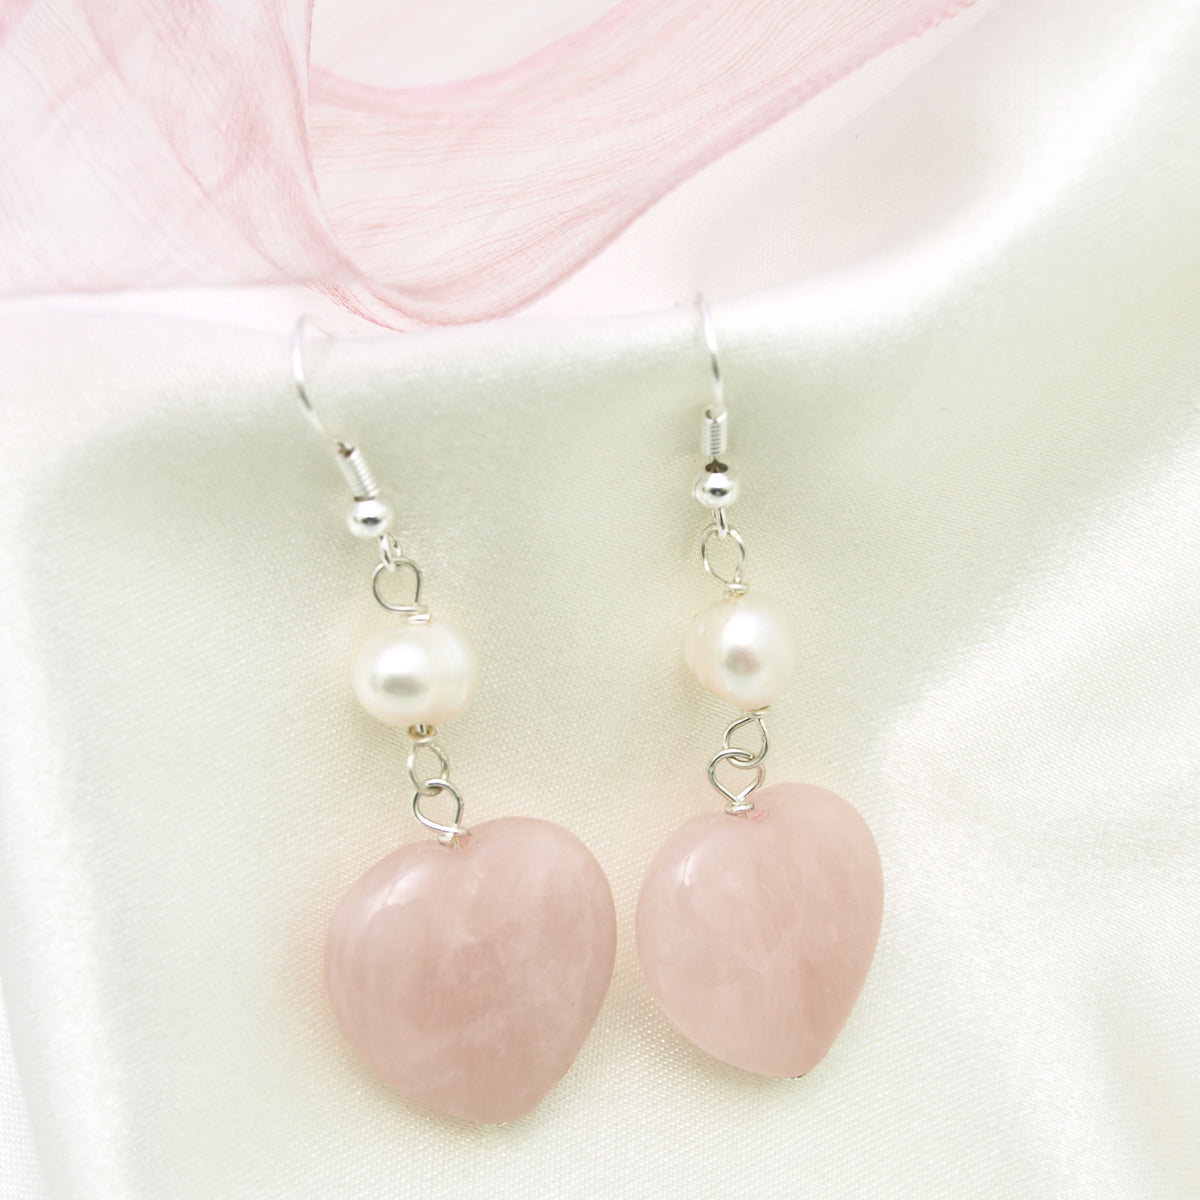 Heart Shaped Rose Quartz Dangle Earrings